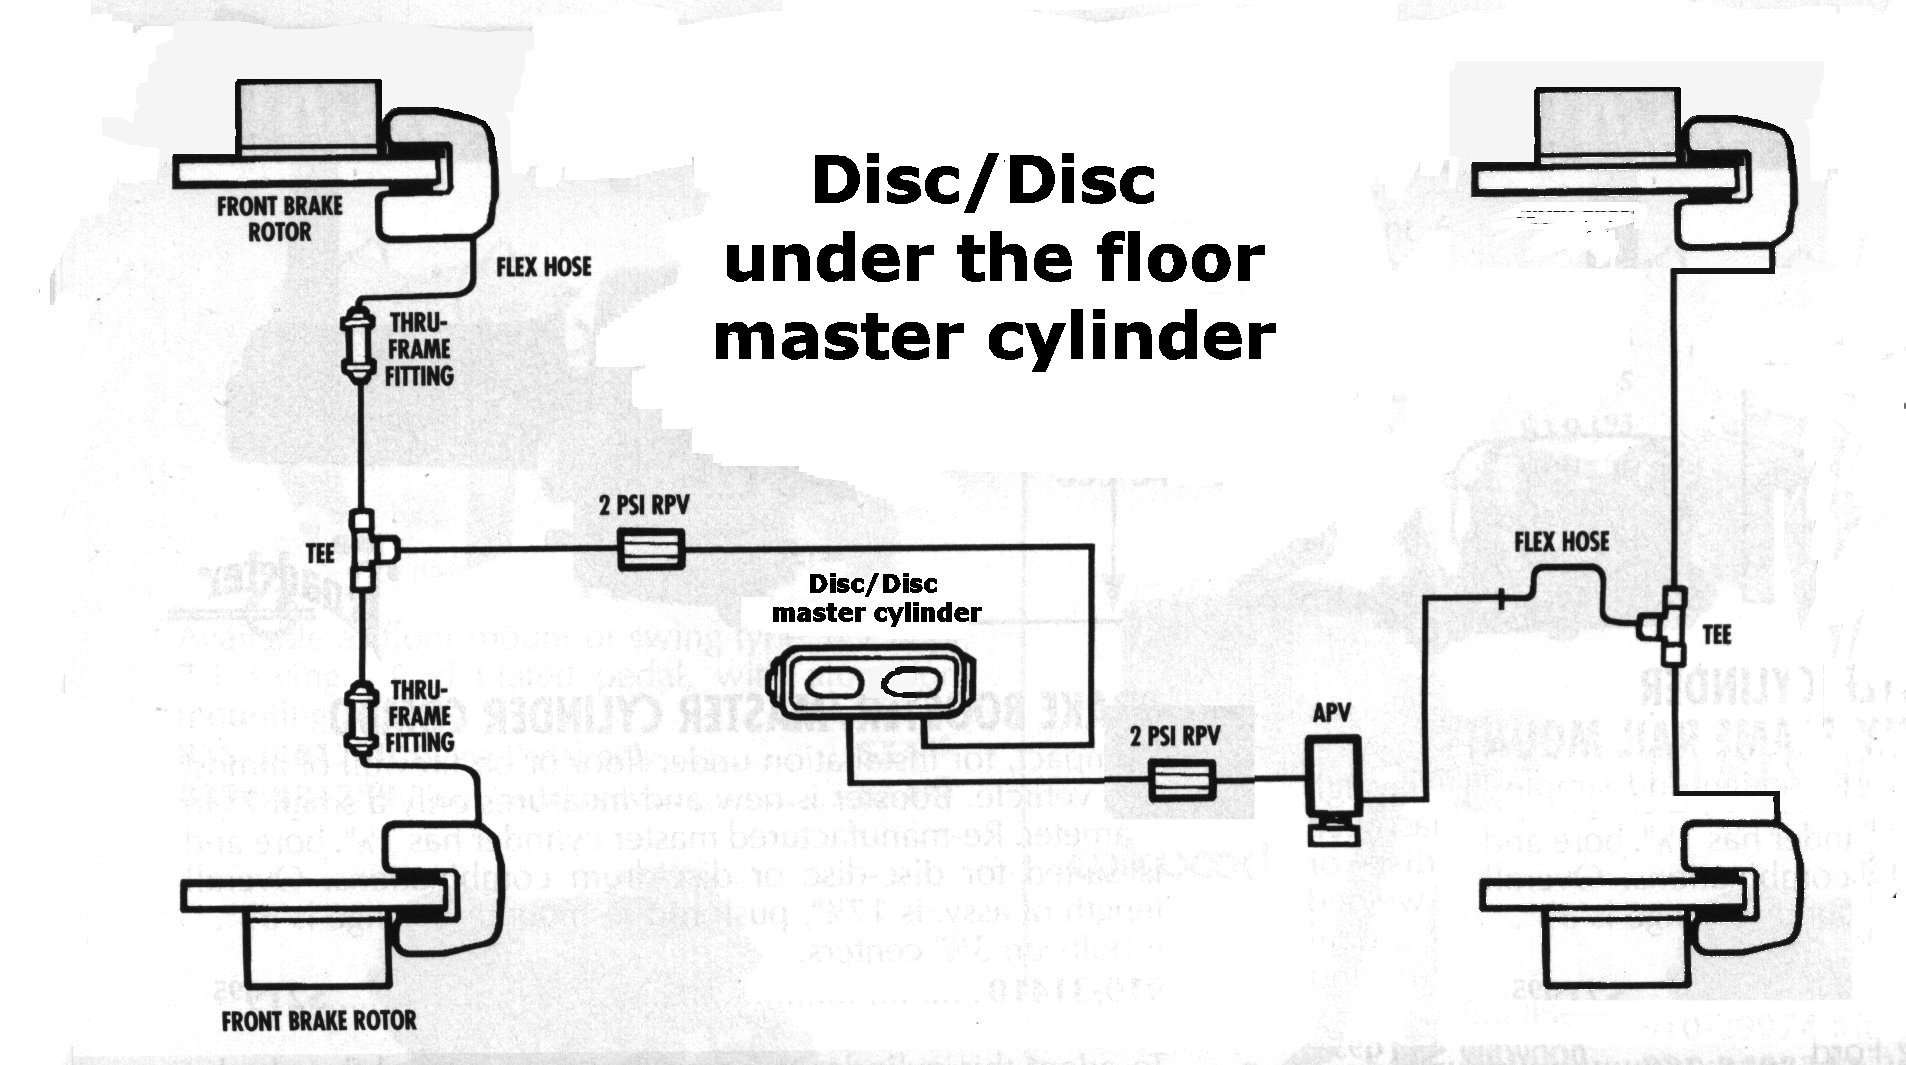 bose surround sound system wiring diagram wiring diagrams bose surround sound wiring diagram car